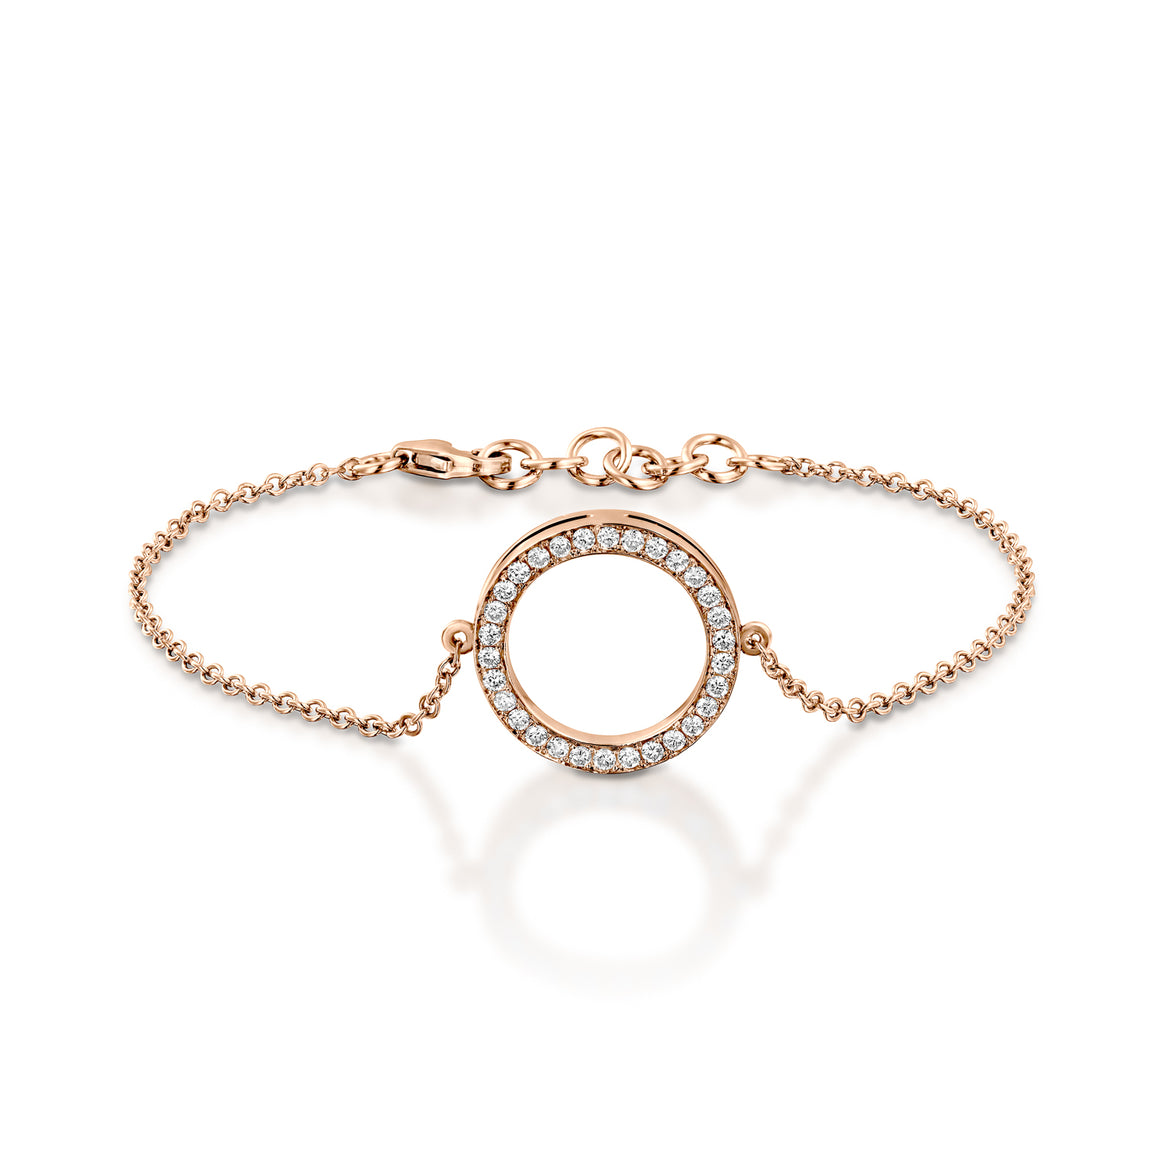 0.38 Cart Diamond chain bracelet with circle pendant - Yellow gold